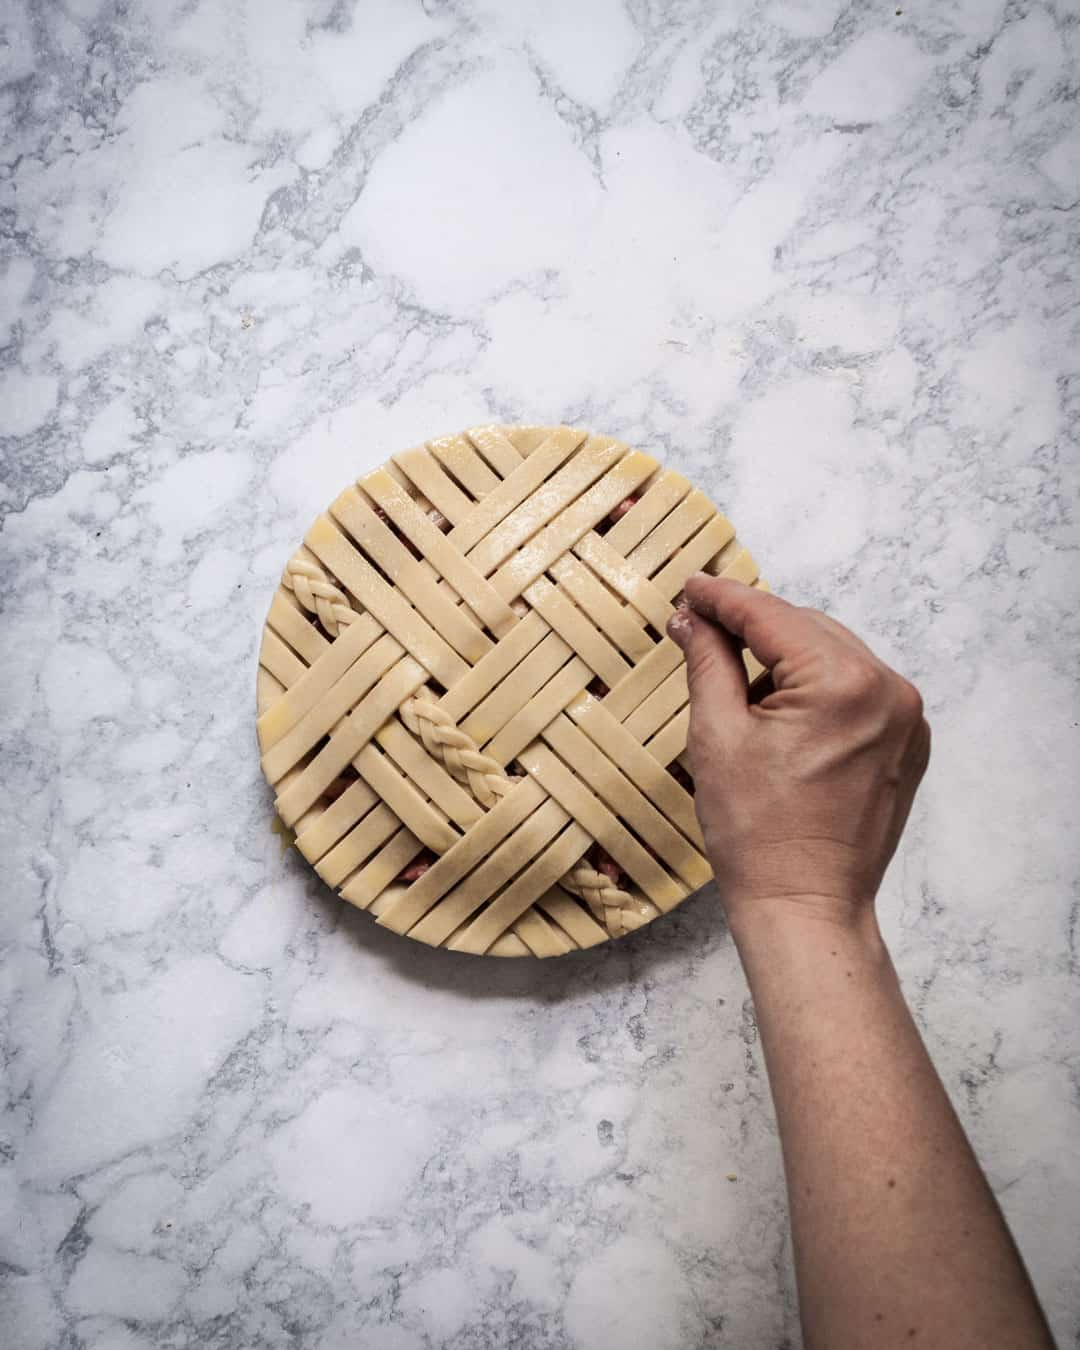 Marble surface with completed lattice pie crust and hand sprinkling sugar on top